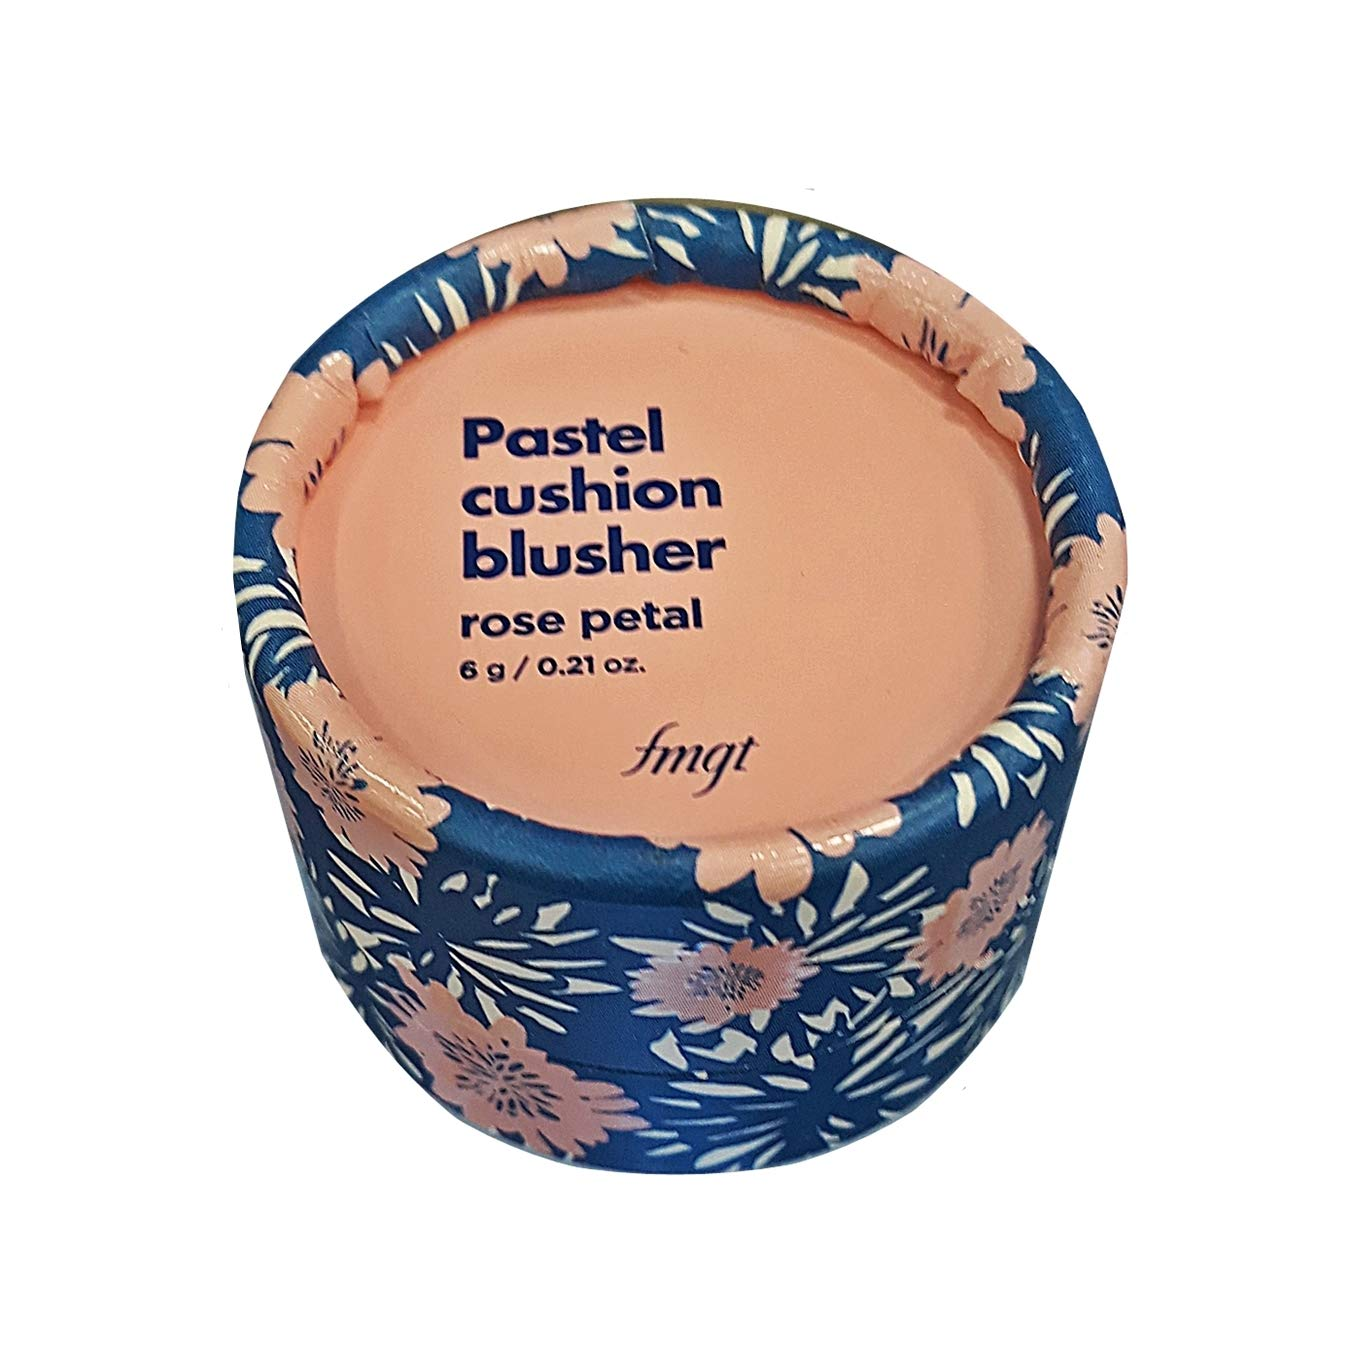 The Face Shop Pastel Cushion Blusher 06 ROSE PETAL 6g